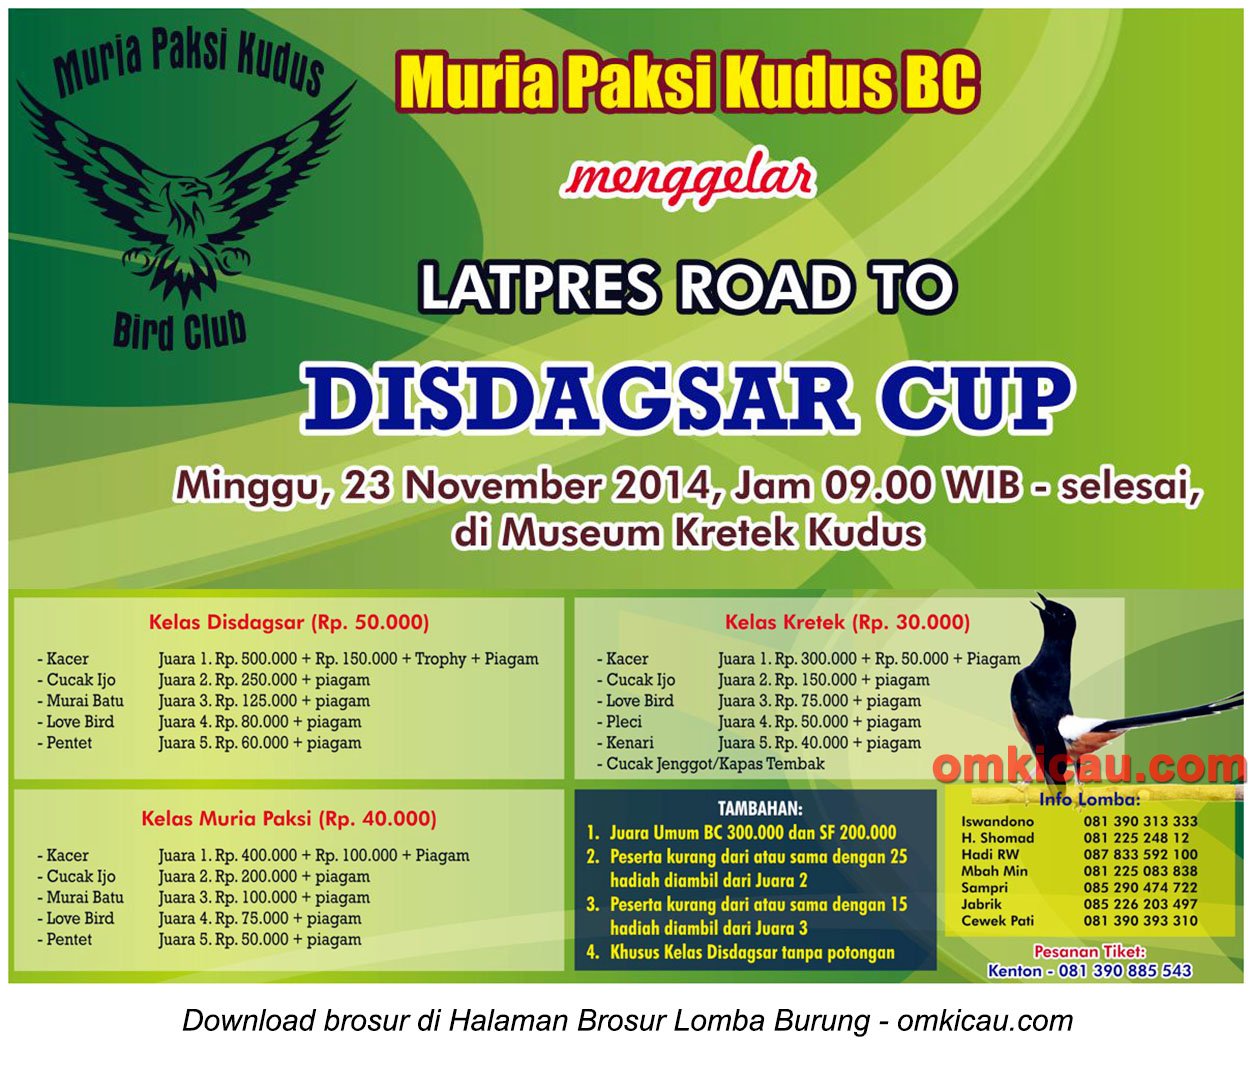 Brosur Latpres Road to Disdagsar Cup, Kudus, 23 November 2014